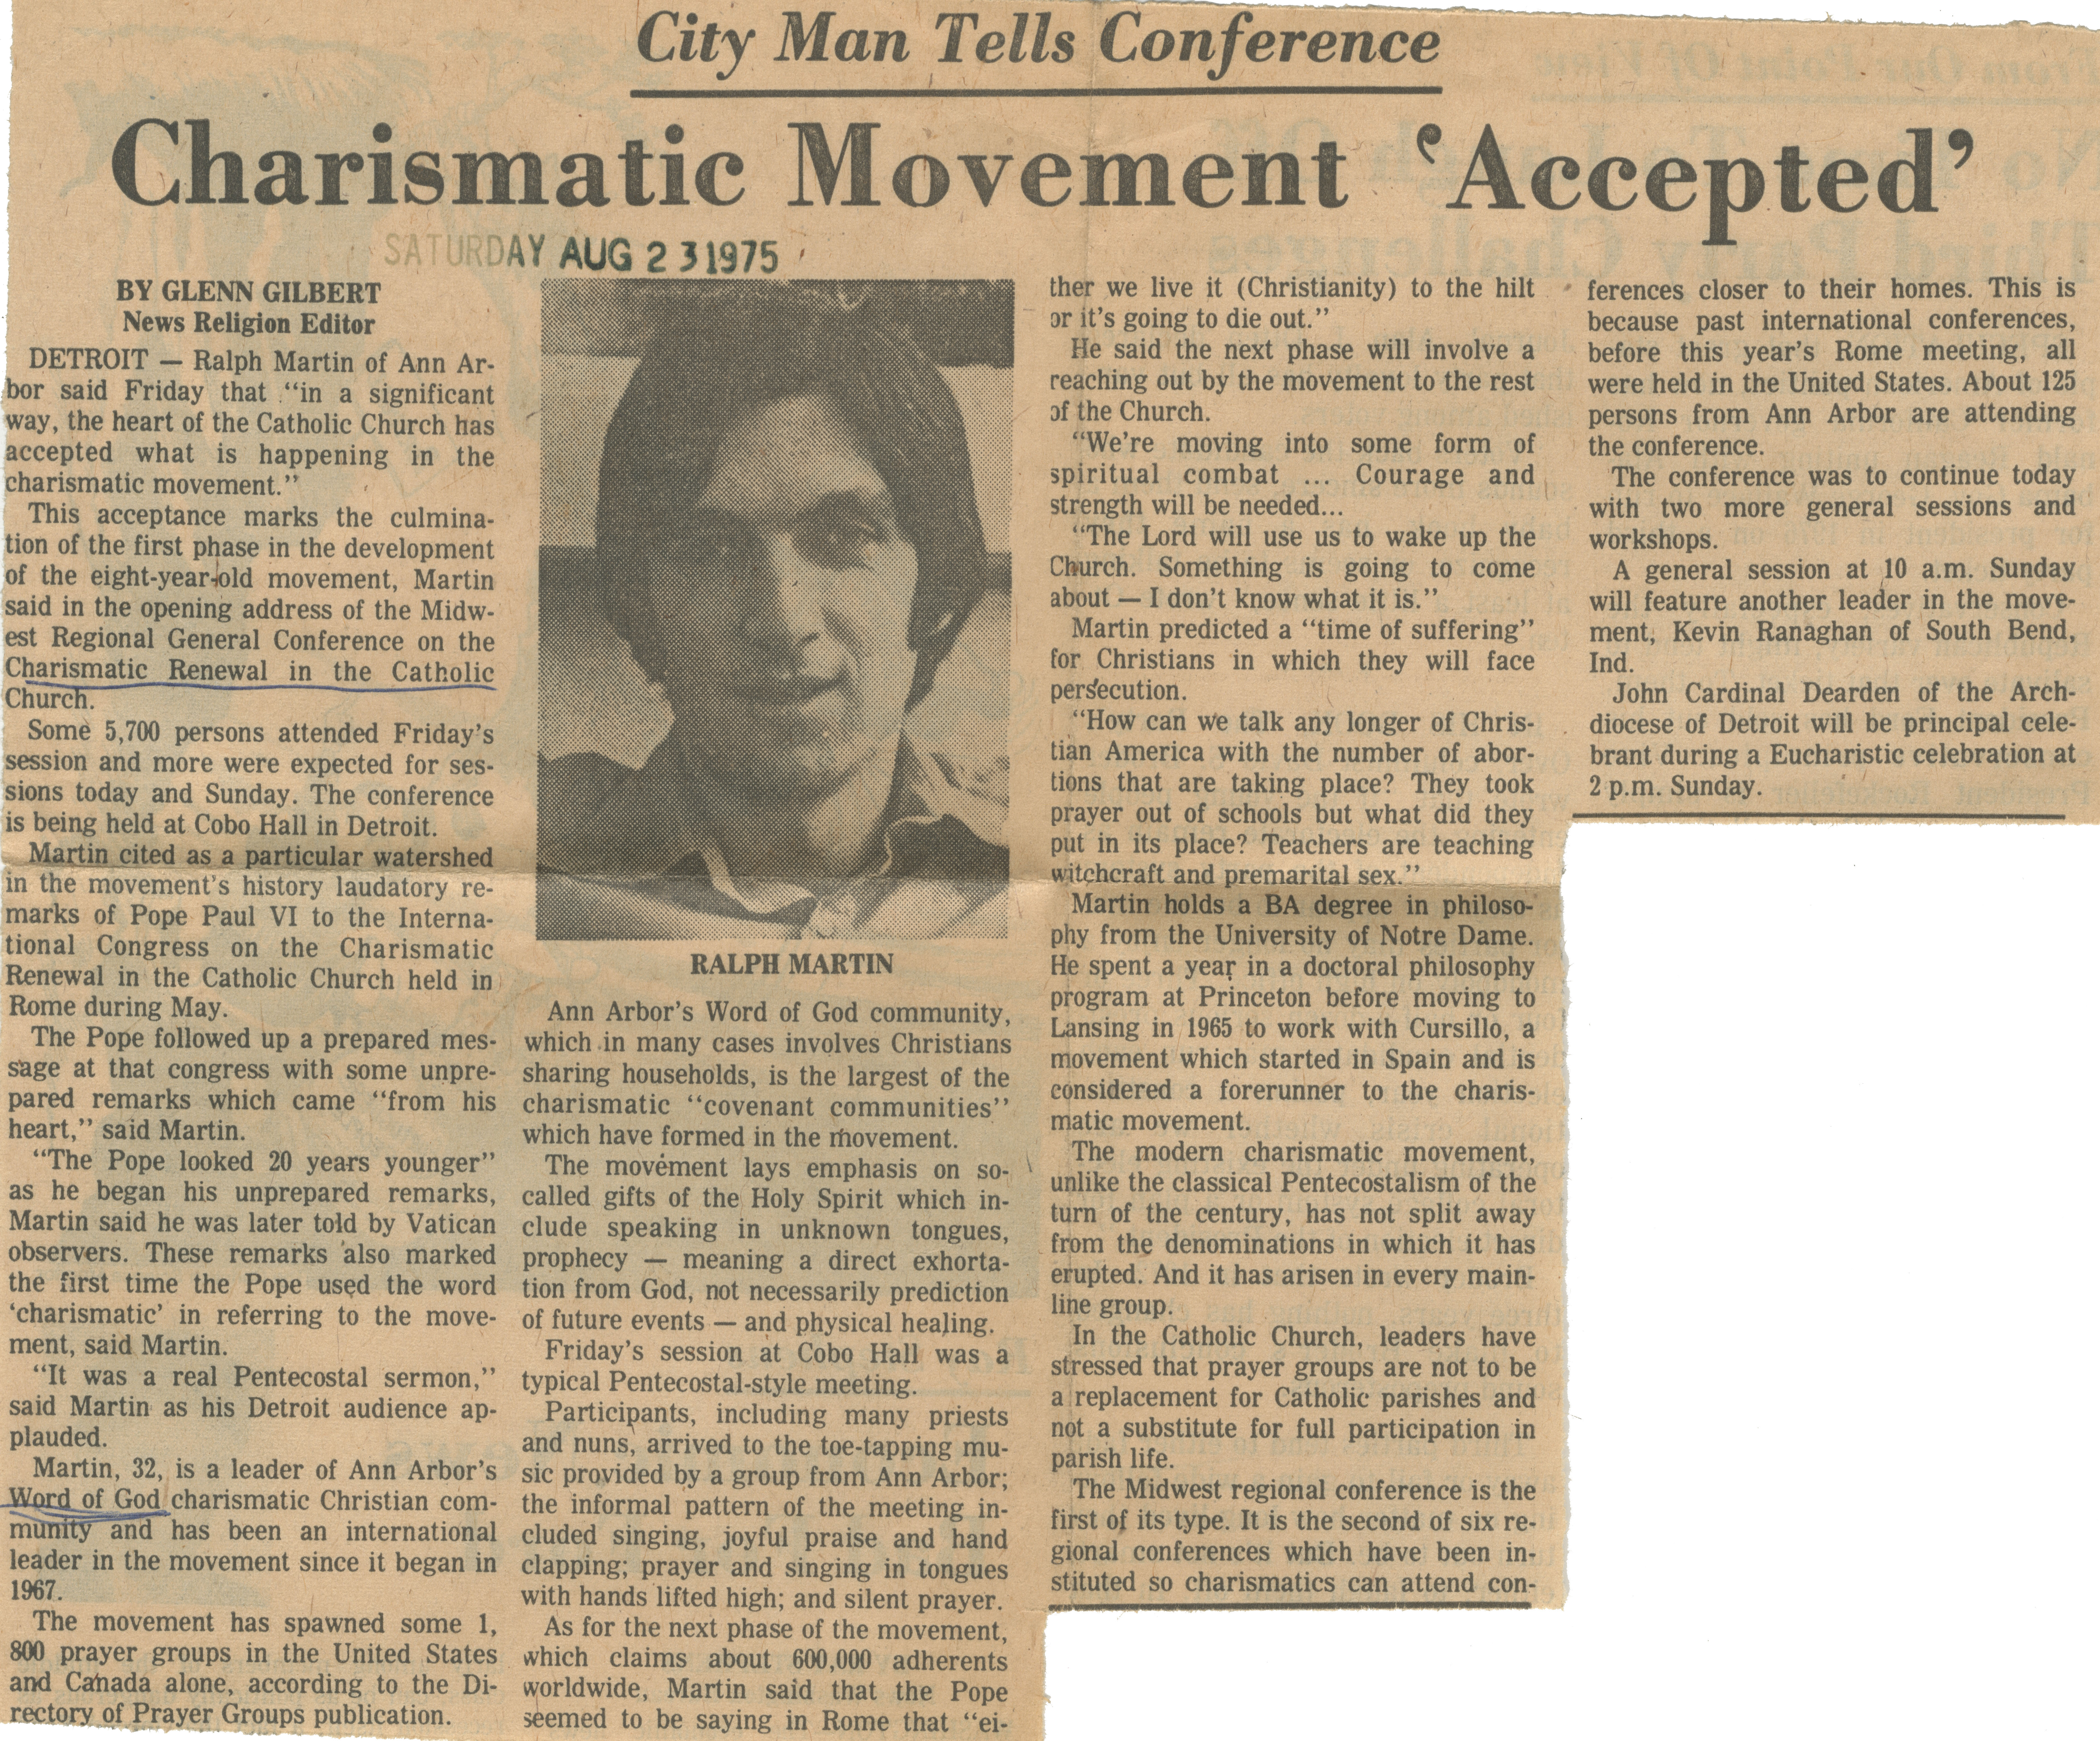 Charismatic Movement 'Accepted' image